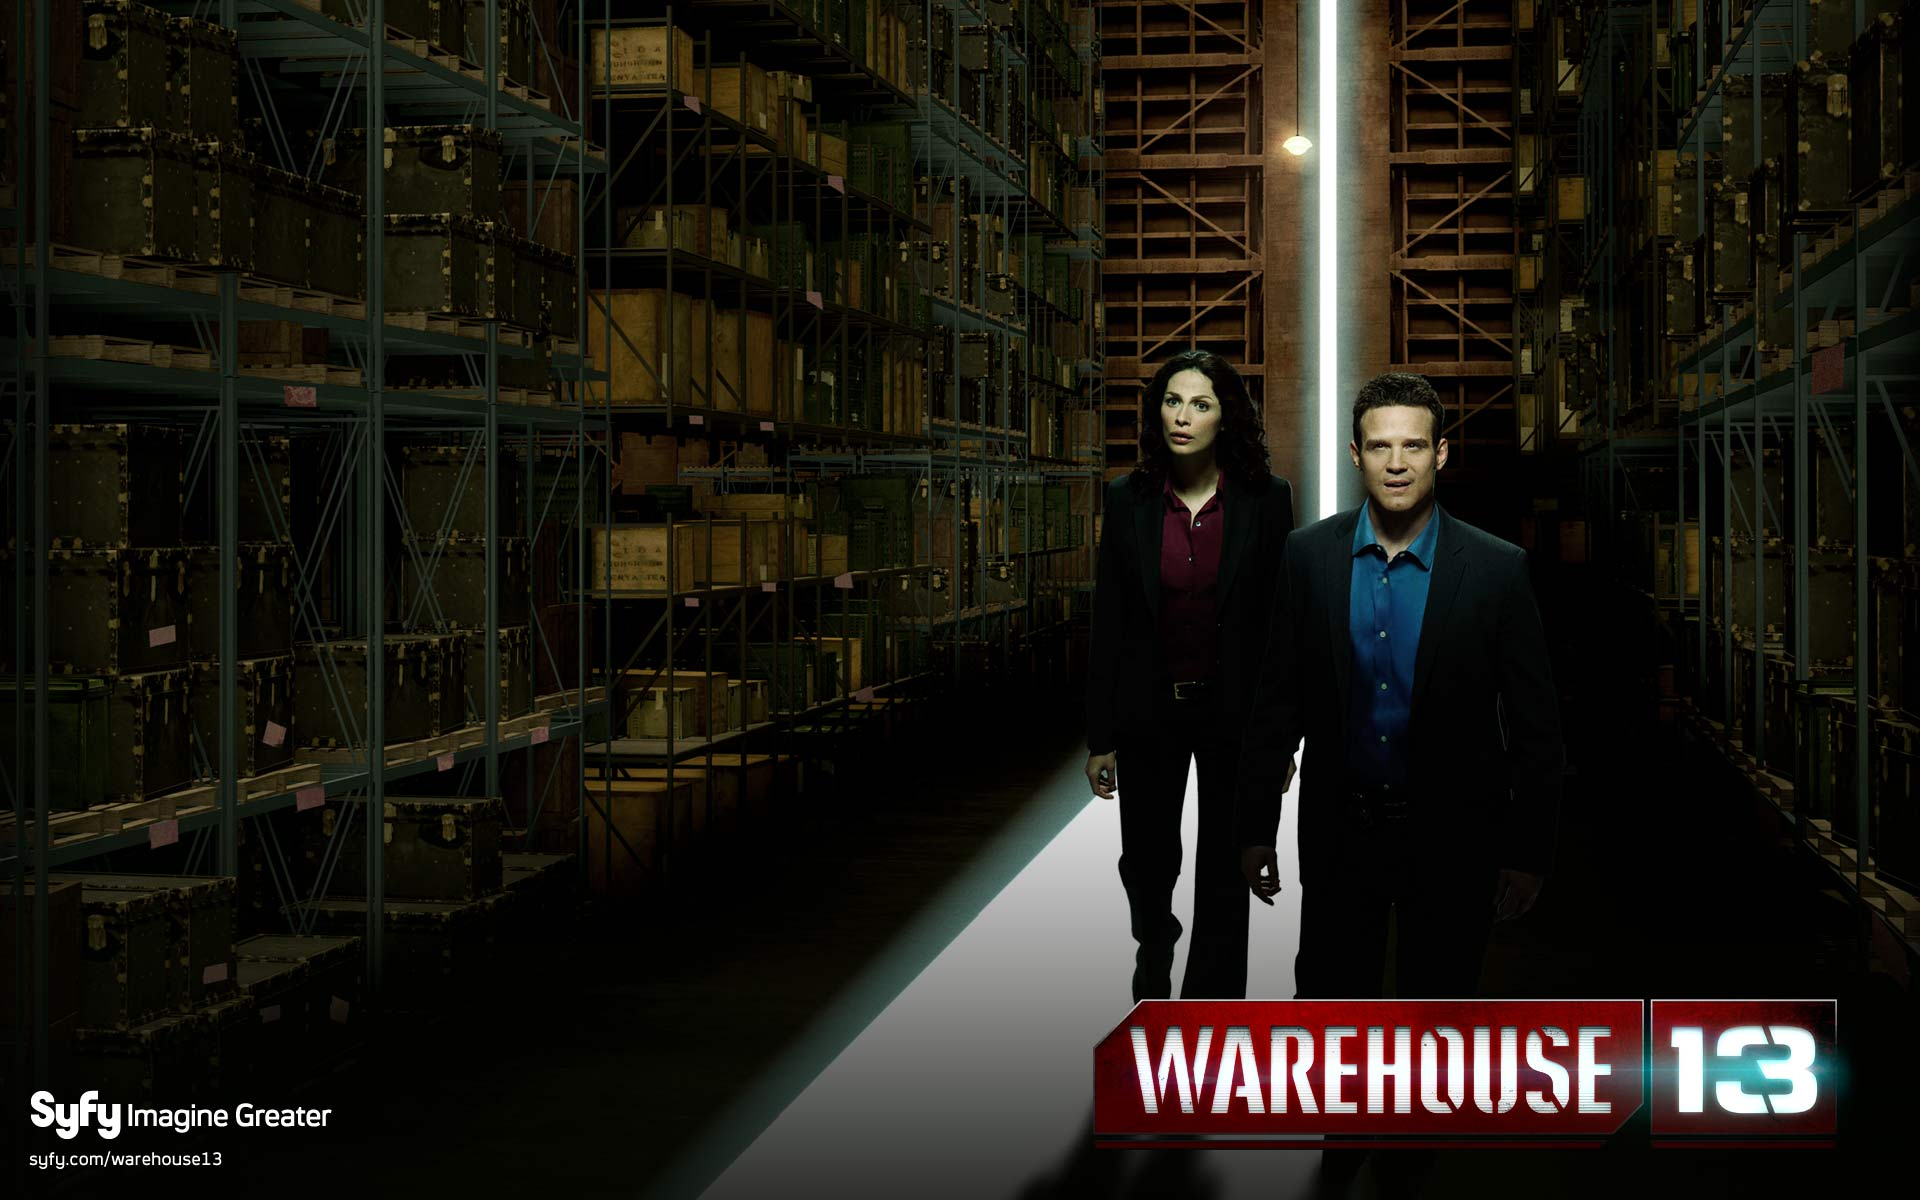 warehouse 13 wallpaper keyart 01jpg 1920x1200